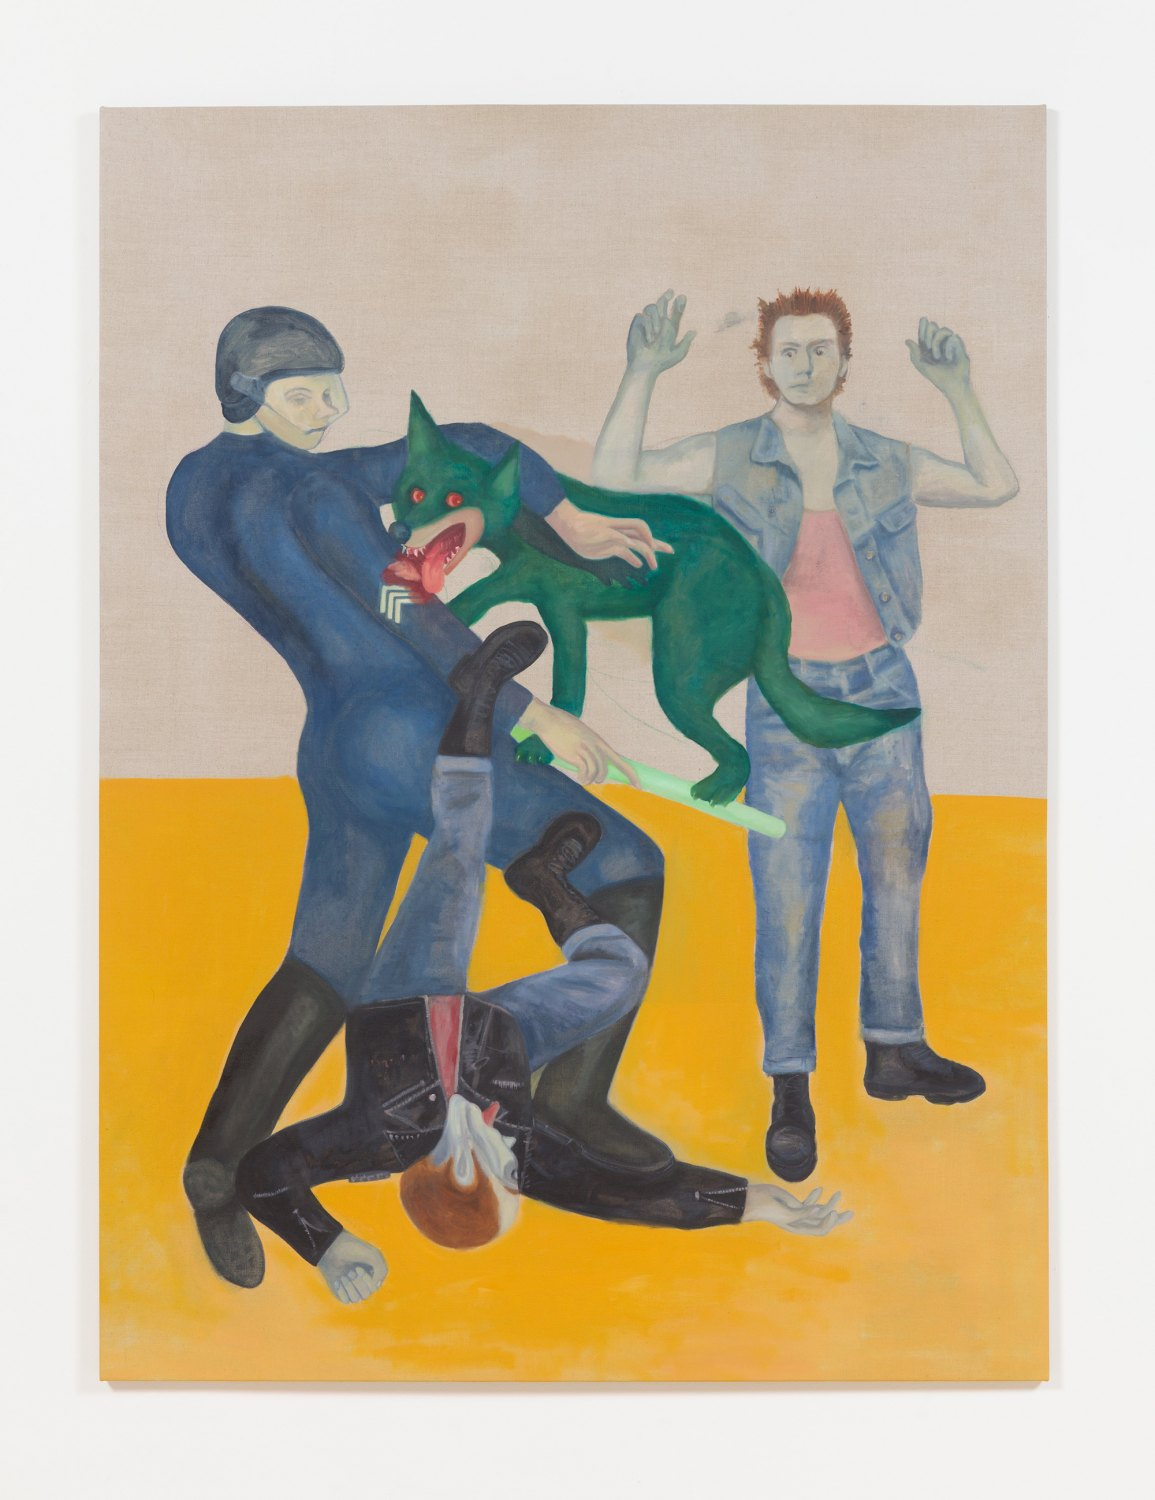 Jill Mulleady The fight was fixed, 2017 Oil on linen, 165 x 126 cm